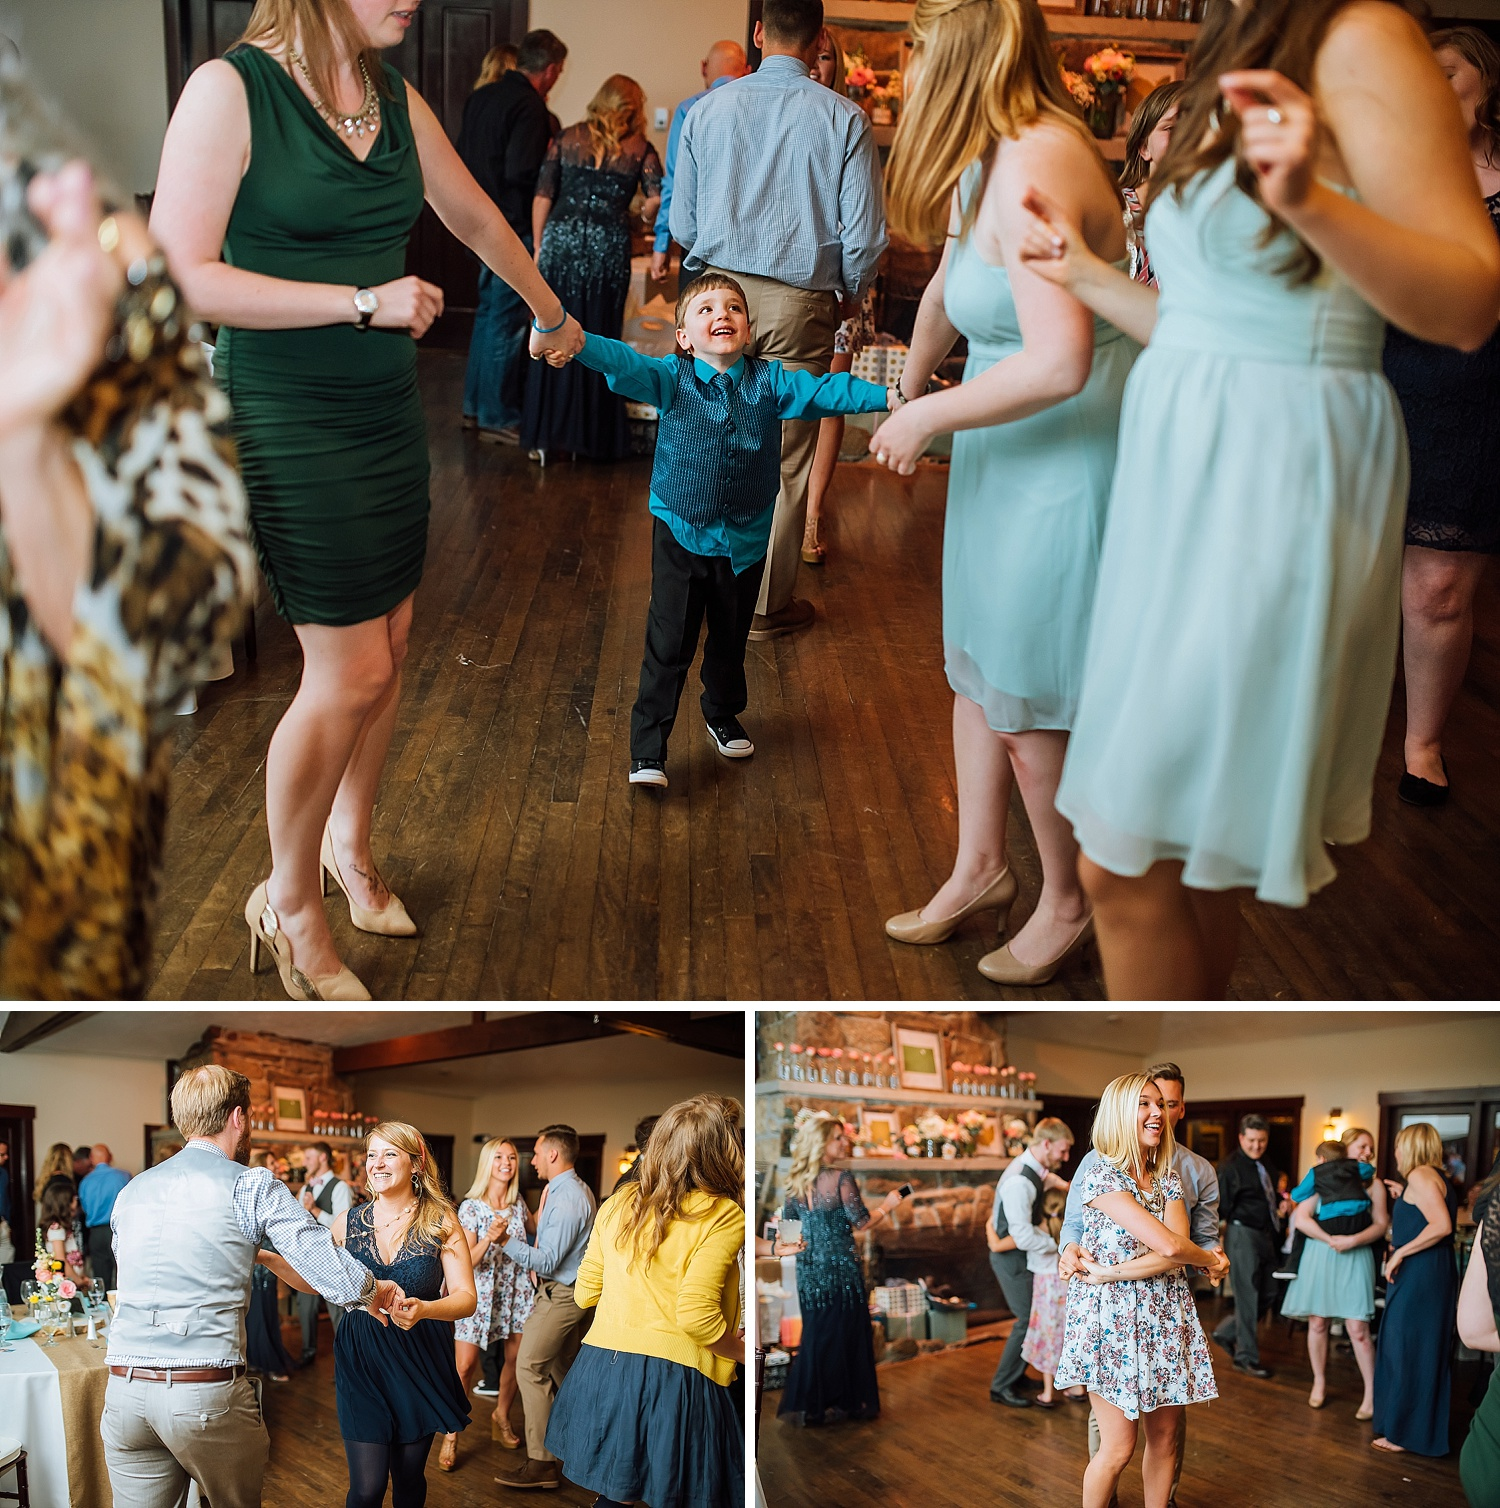 Mary's Lake Lodge is an amazing wedding reception venue up in Estes Park!Photo by Maddie Mae Photography